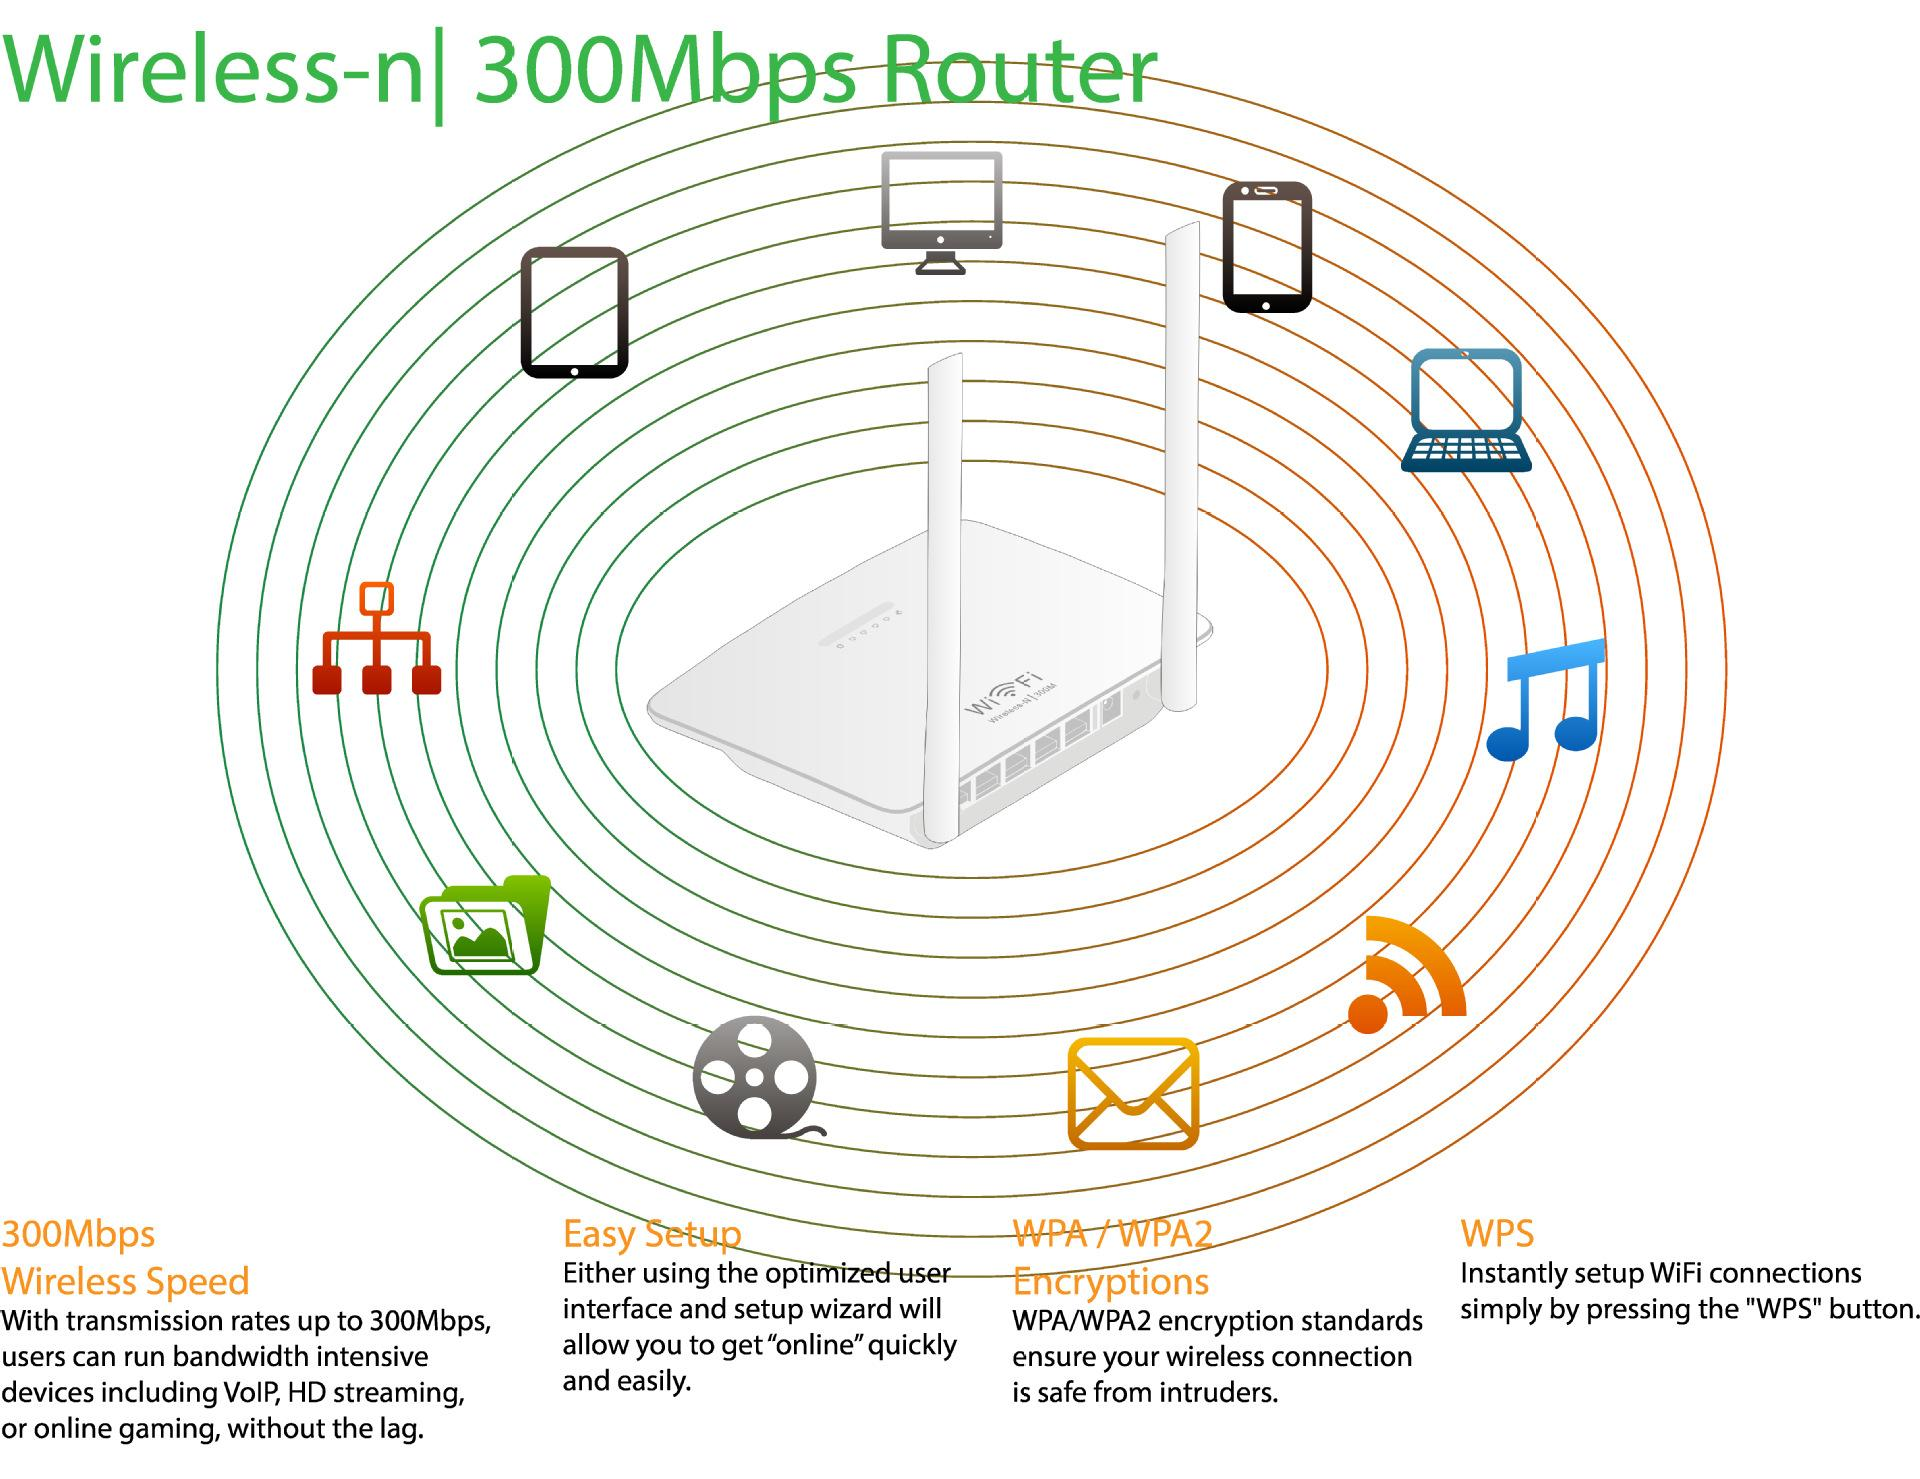 hight resolution of based on 802 11 n technology it allows users to meet the needs of your home network such as hdstreaming media online games and download files